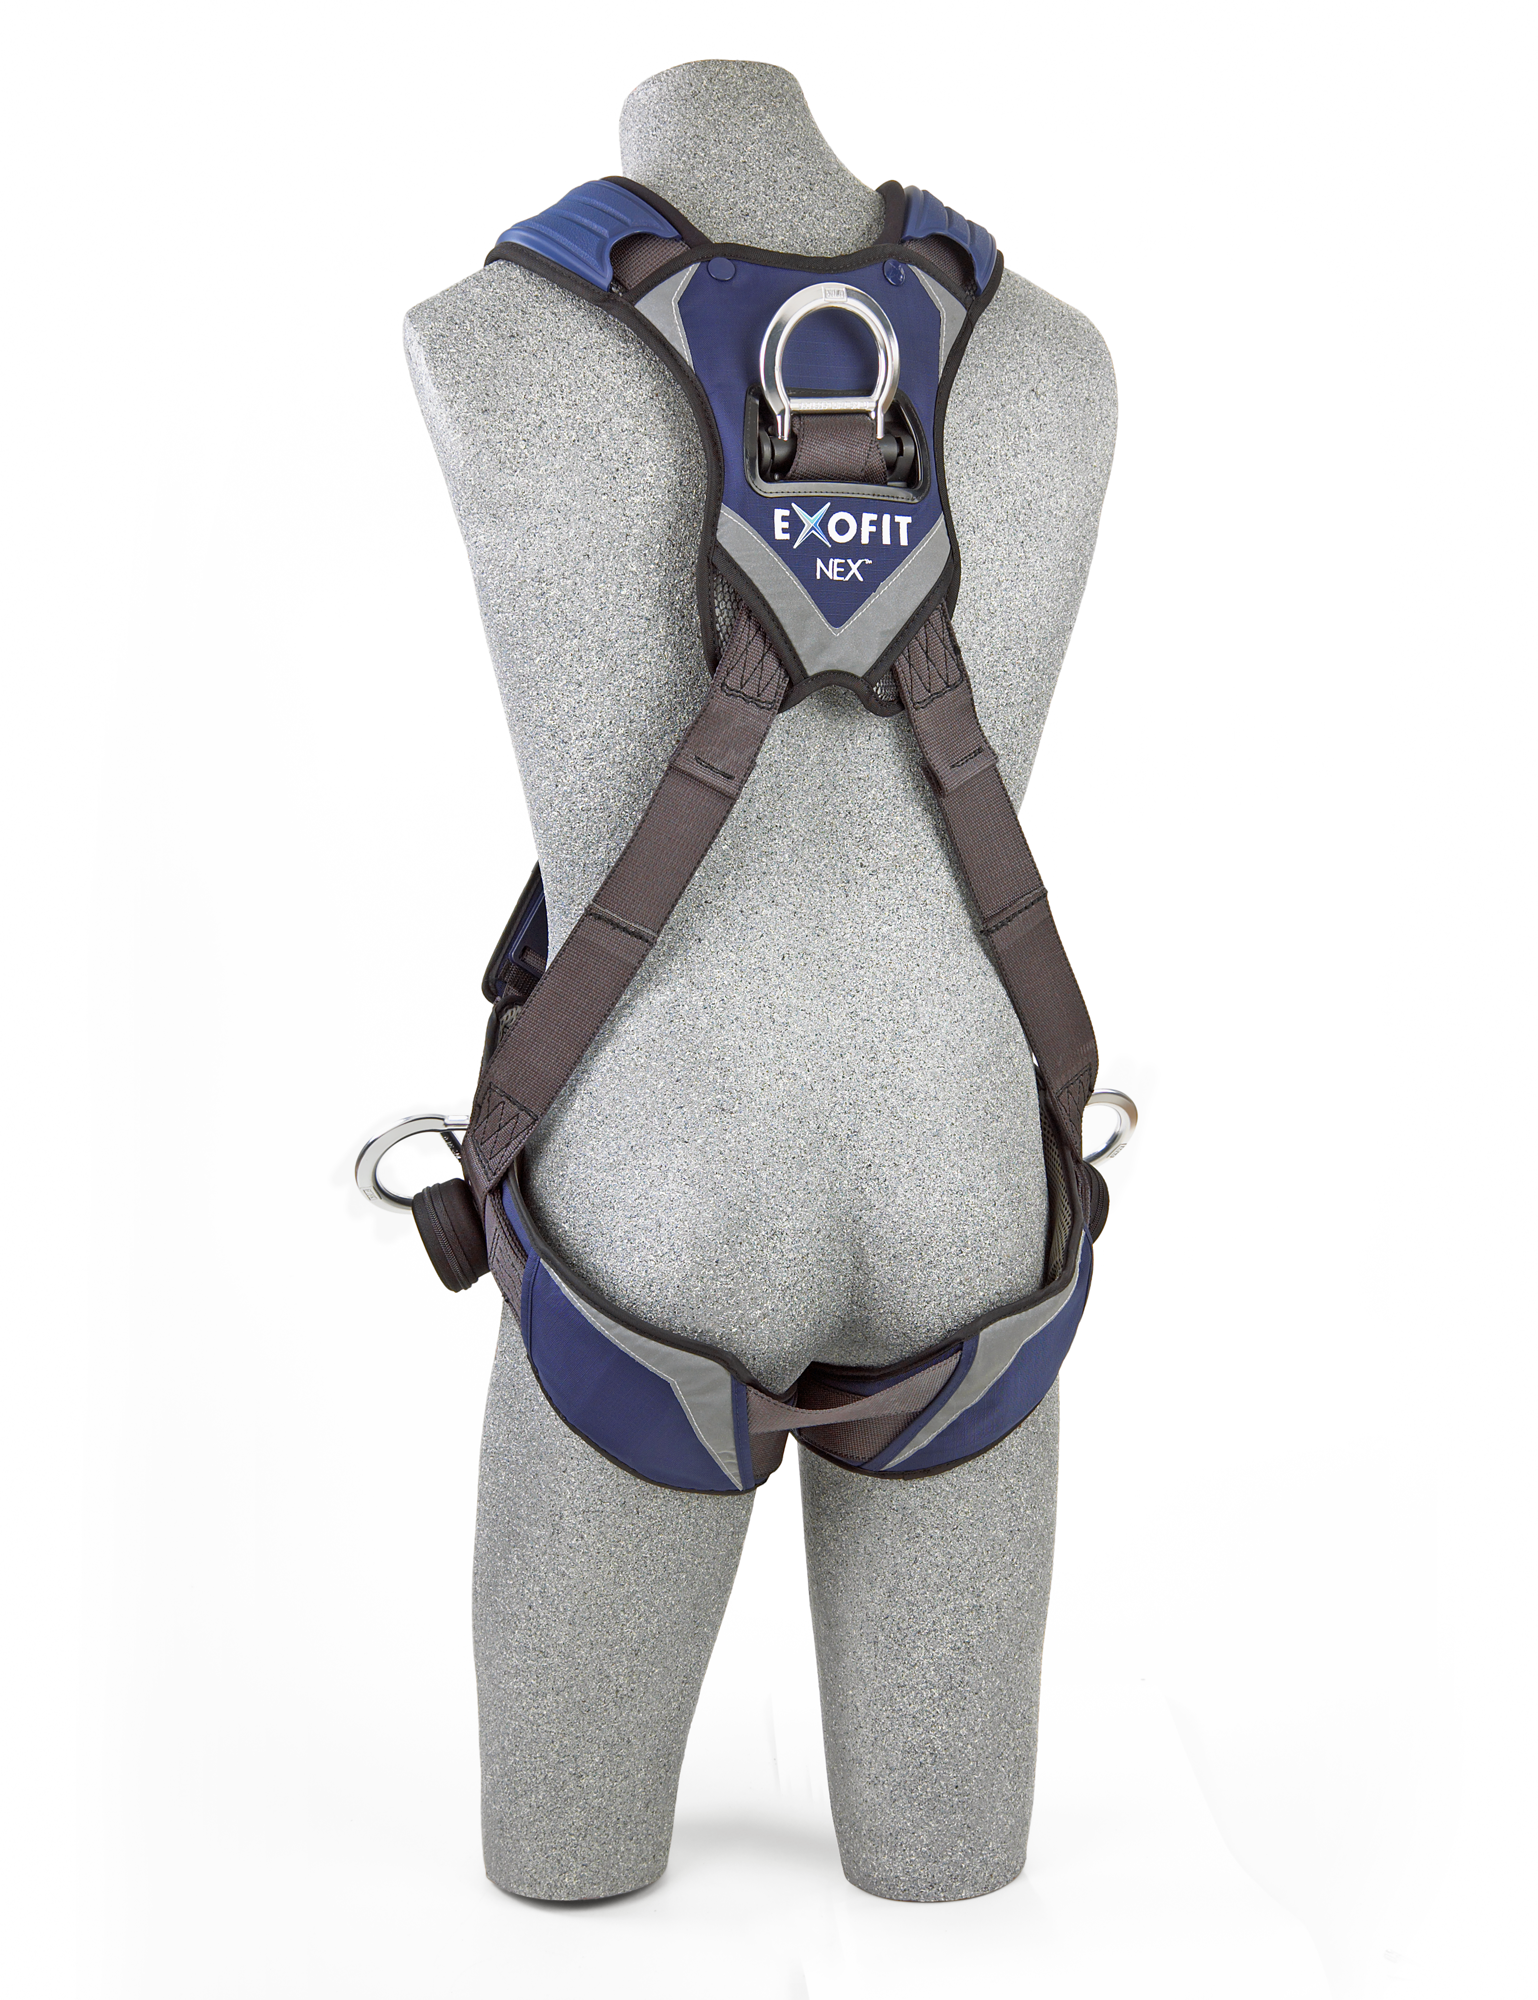 ExoFit NEX Crossover Harness, Quick-Connect Chest and Legs, Side D-Rings, Back